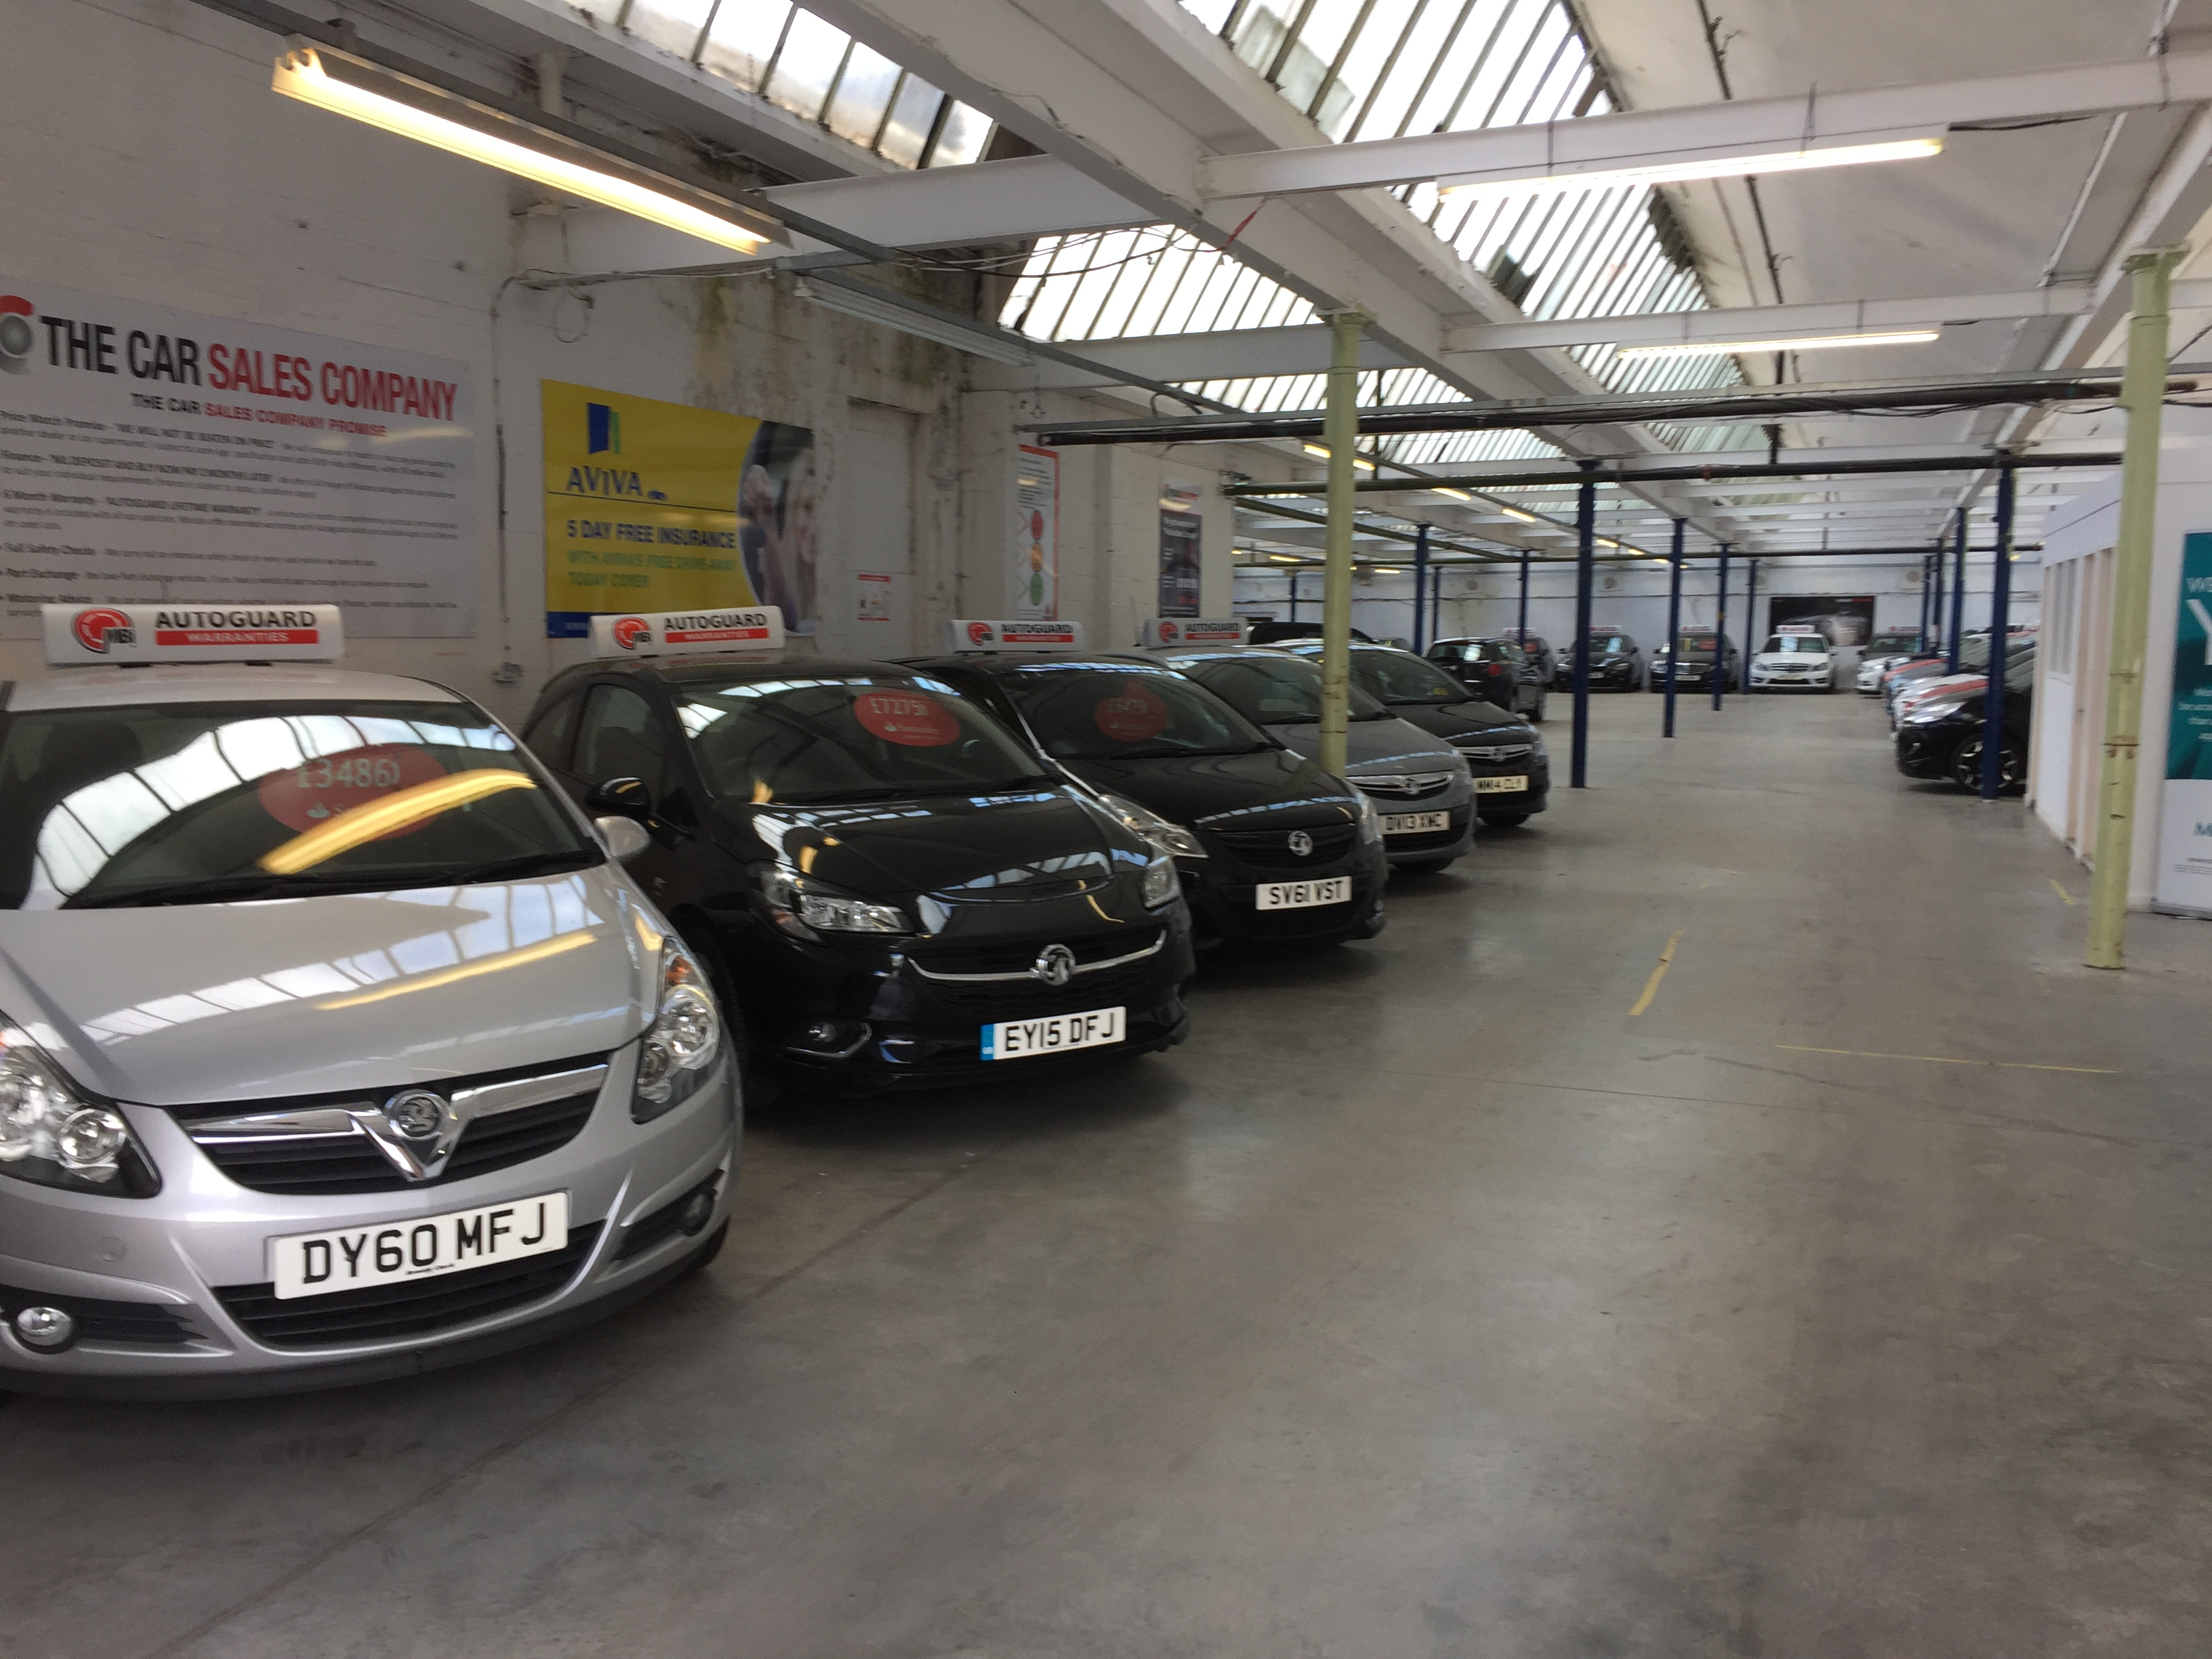 photos of the car sales pany bury